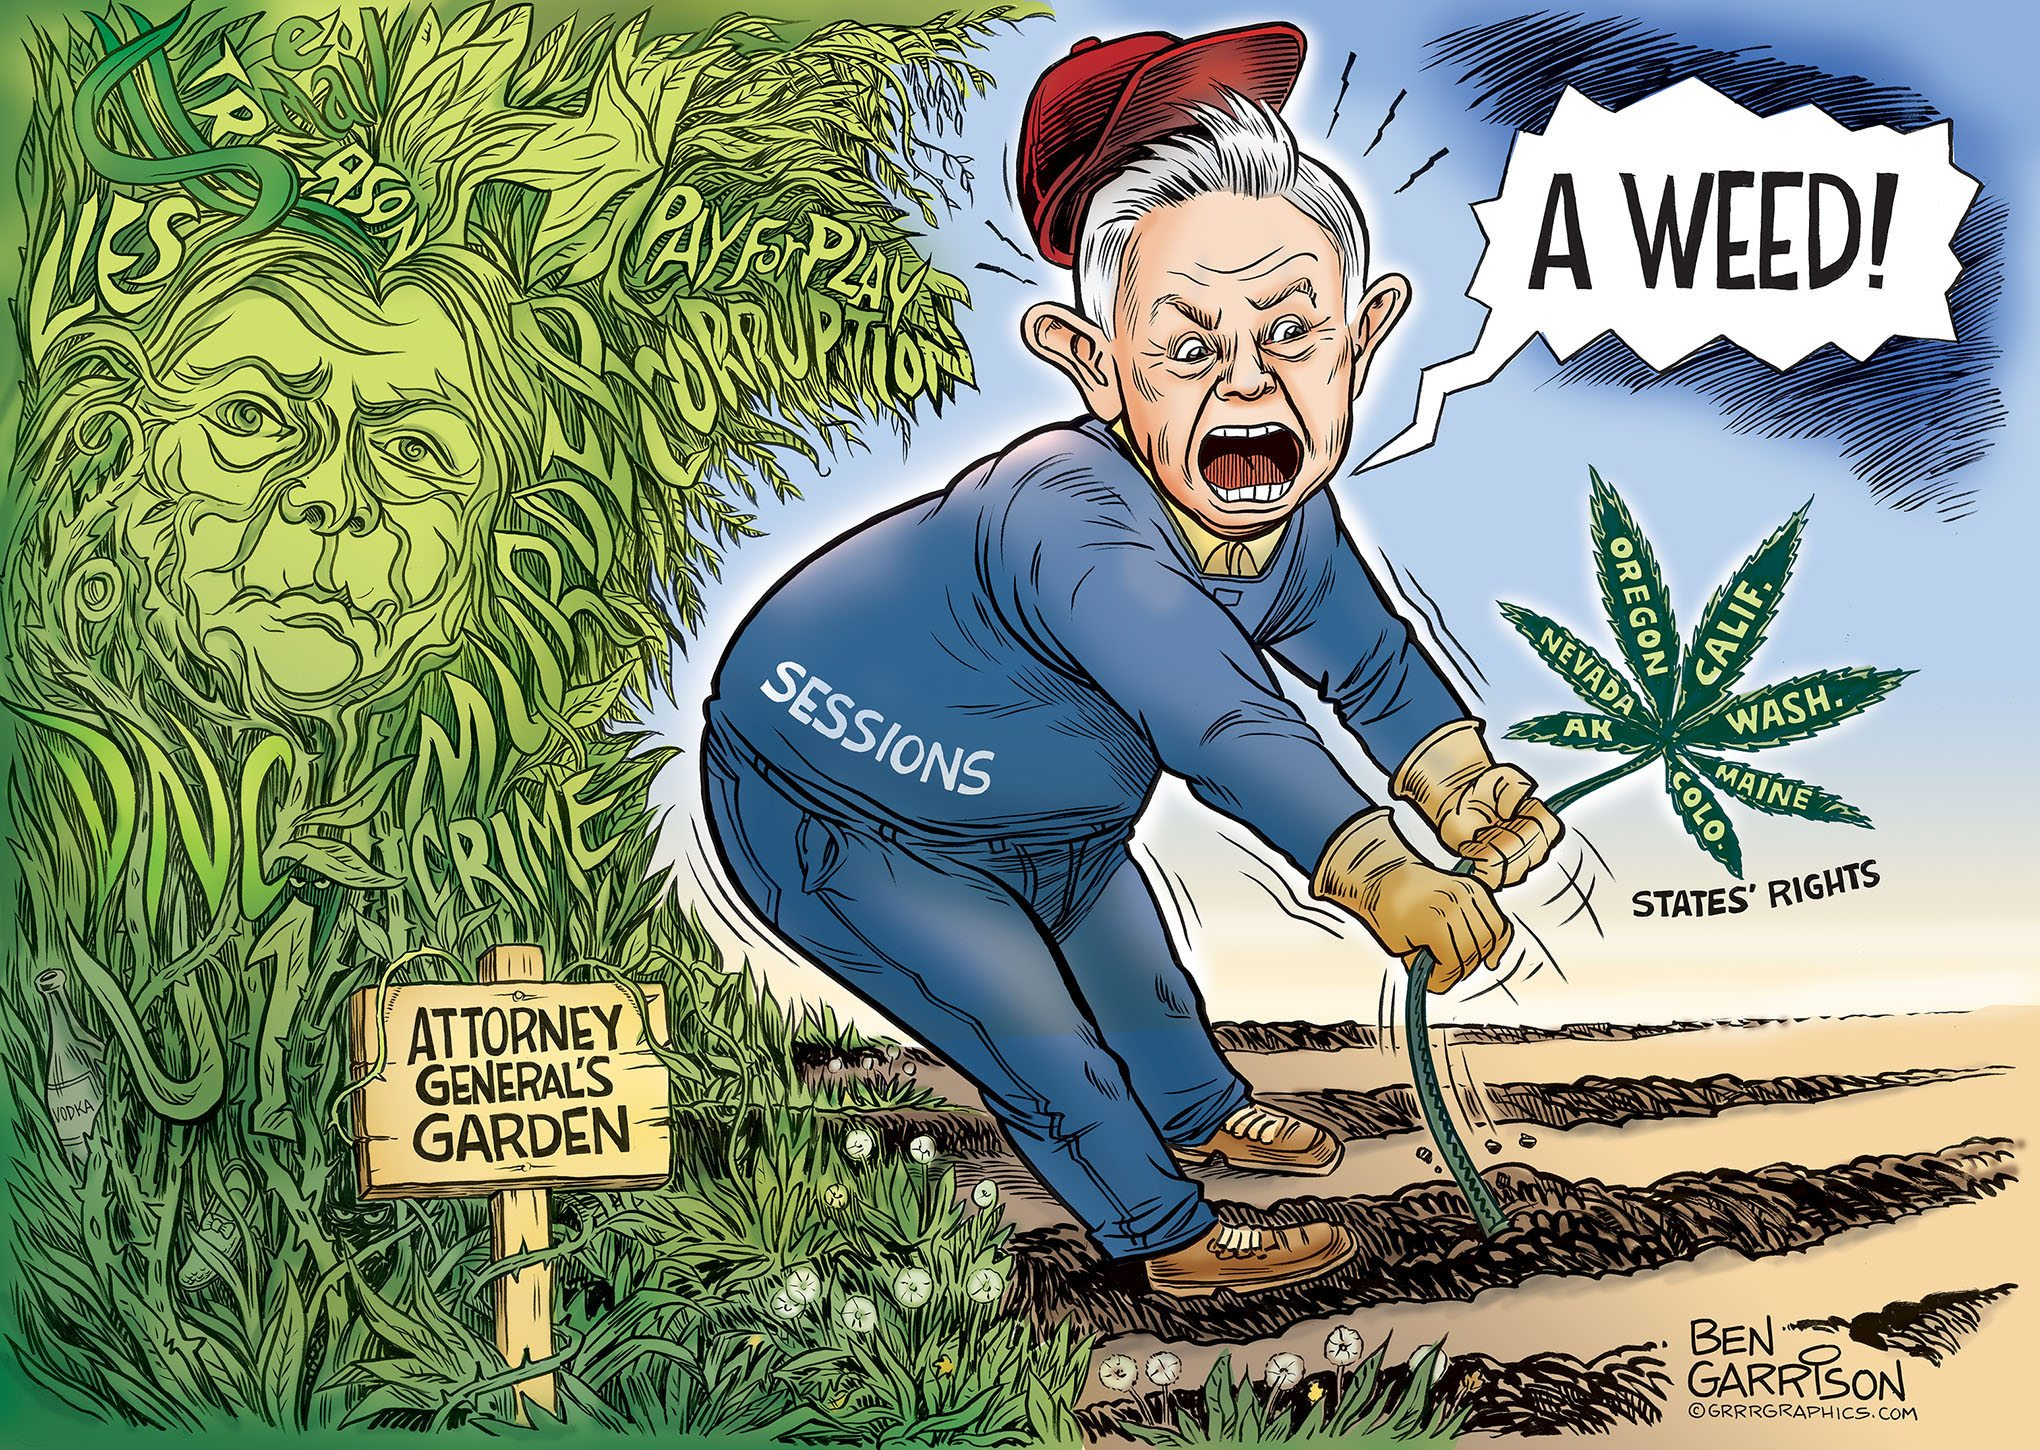 Session's Garden - Grrr Graphics